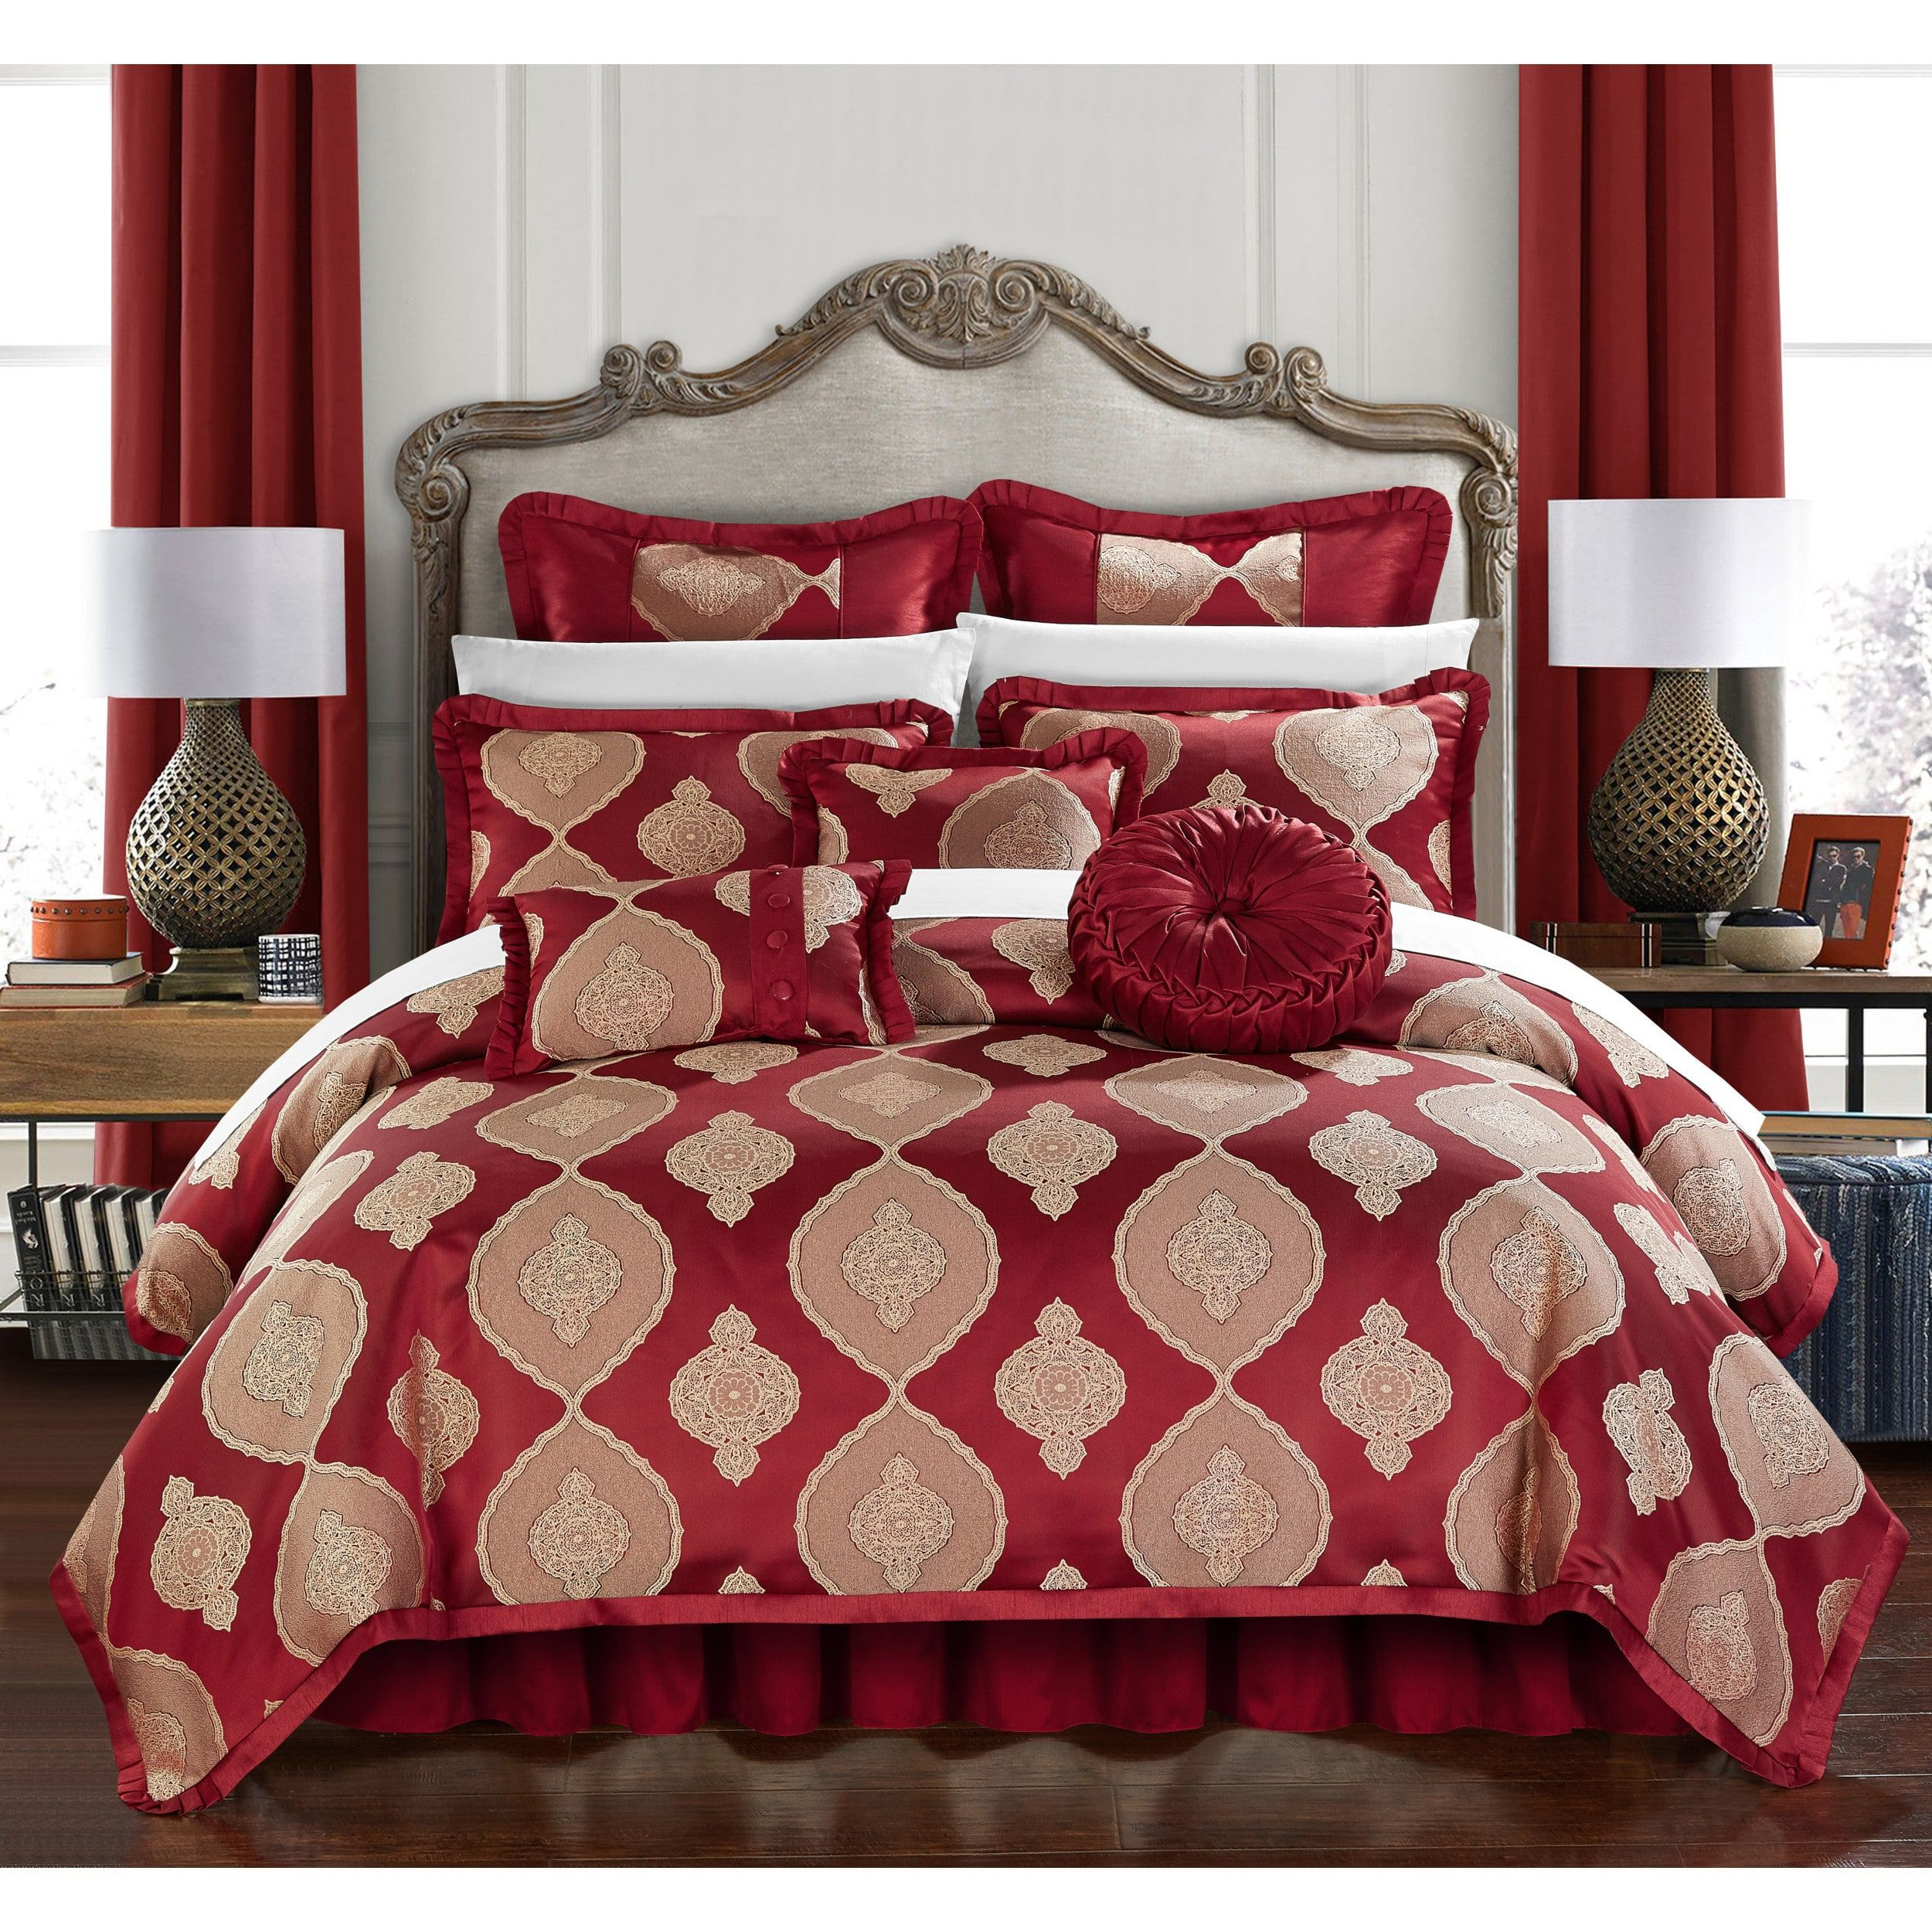 gray medallion queen bed decoration king comforter sets ideas and beyond ru chic stunning extraordinary piece bedding colorful bedspreads set burgundy bath bedroom for comforters lovely luxury aisha